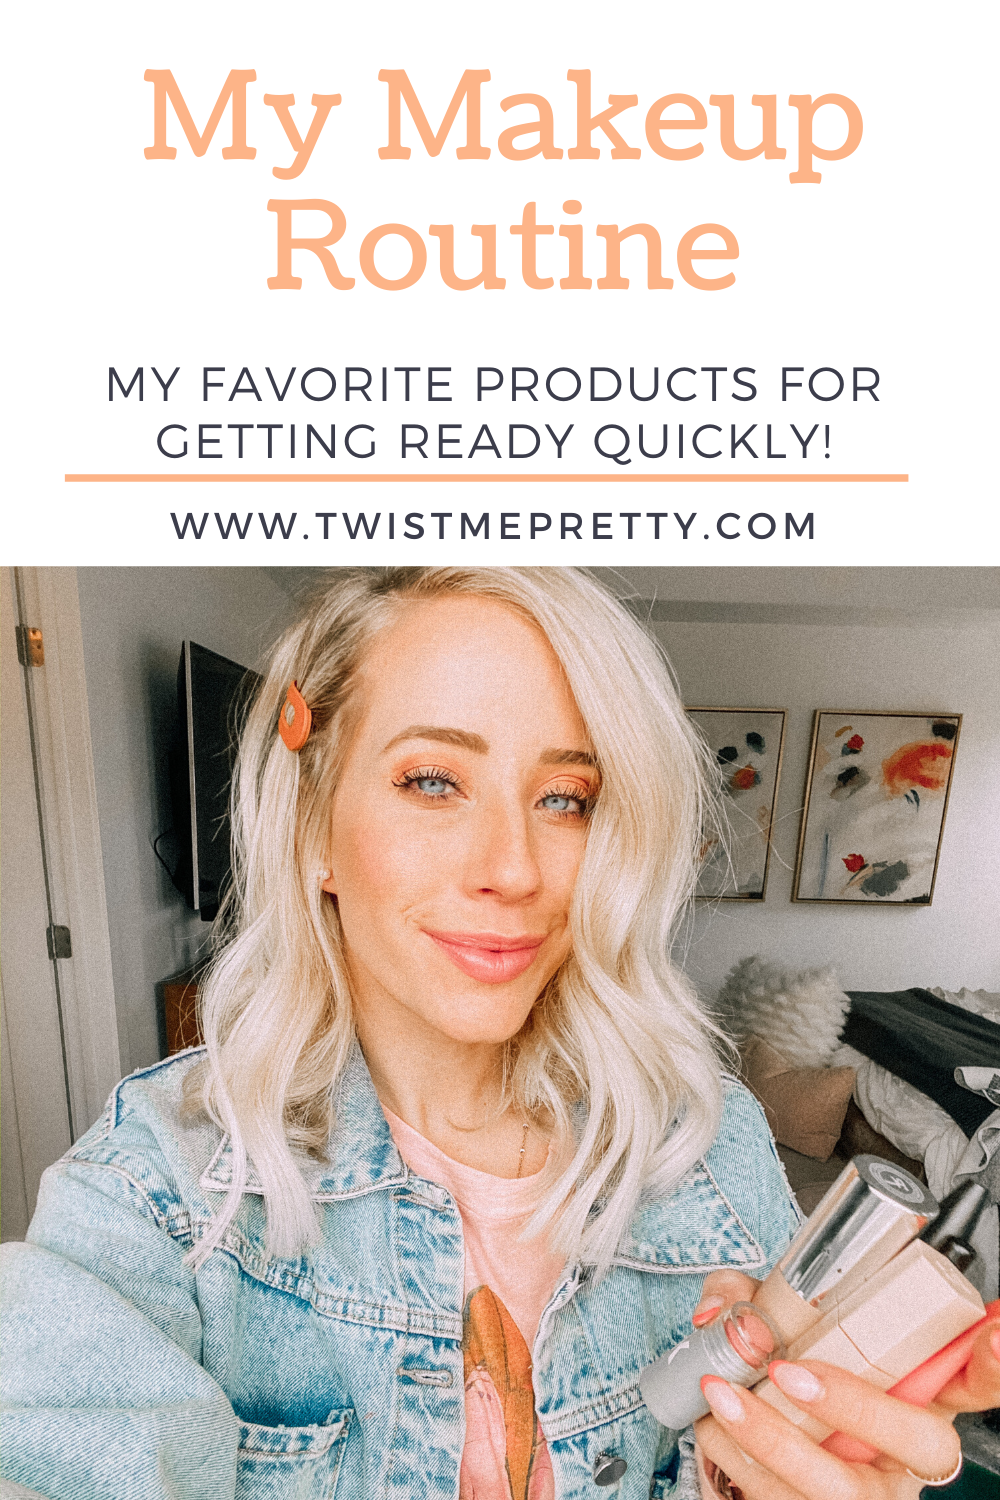 My Makeup Routine- my favorite products for getting ready quickly! www.twistmepretty.com